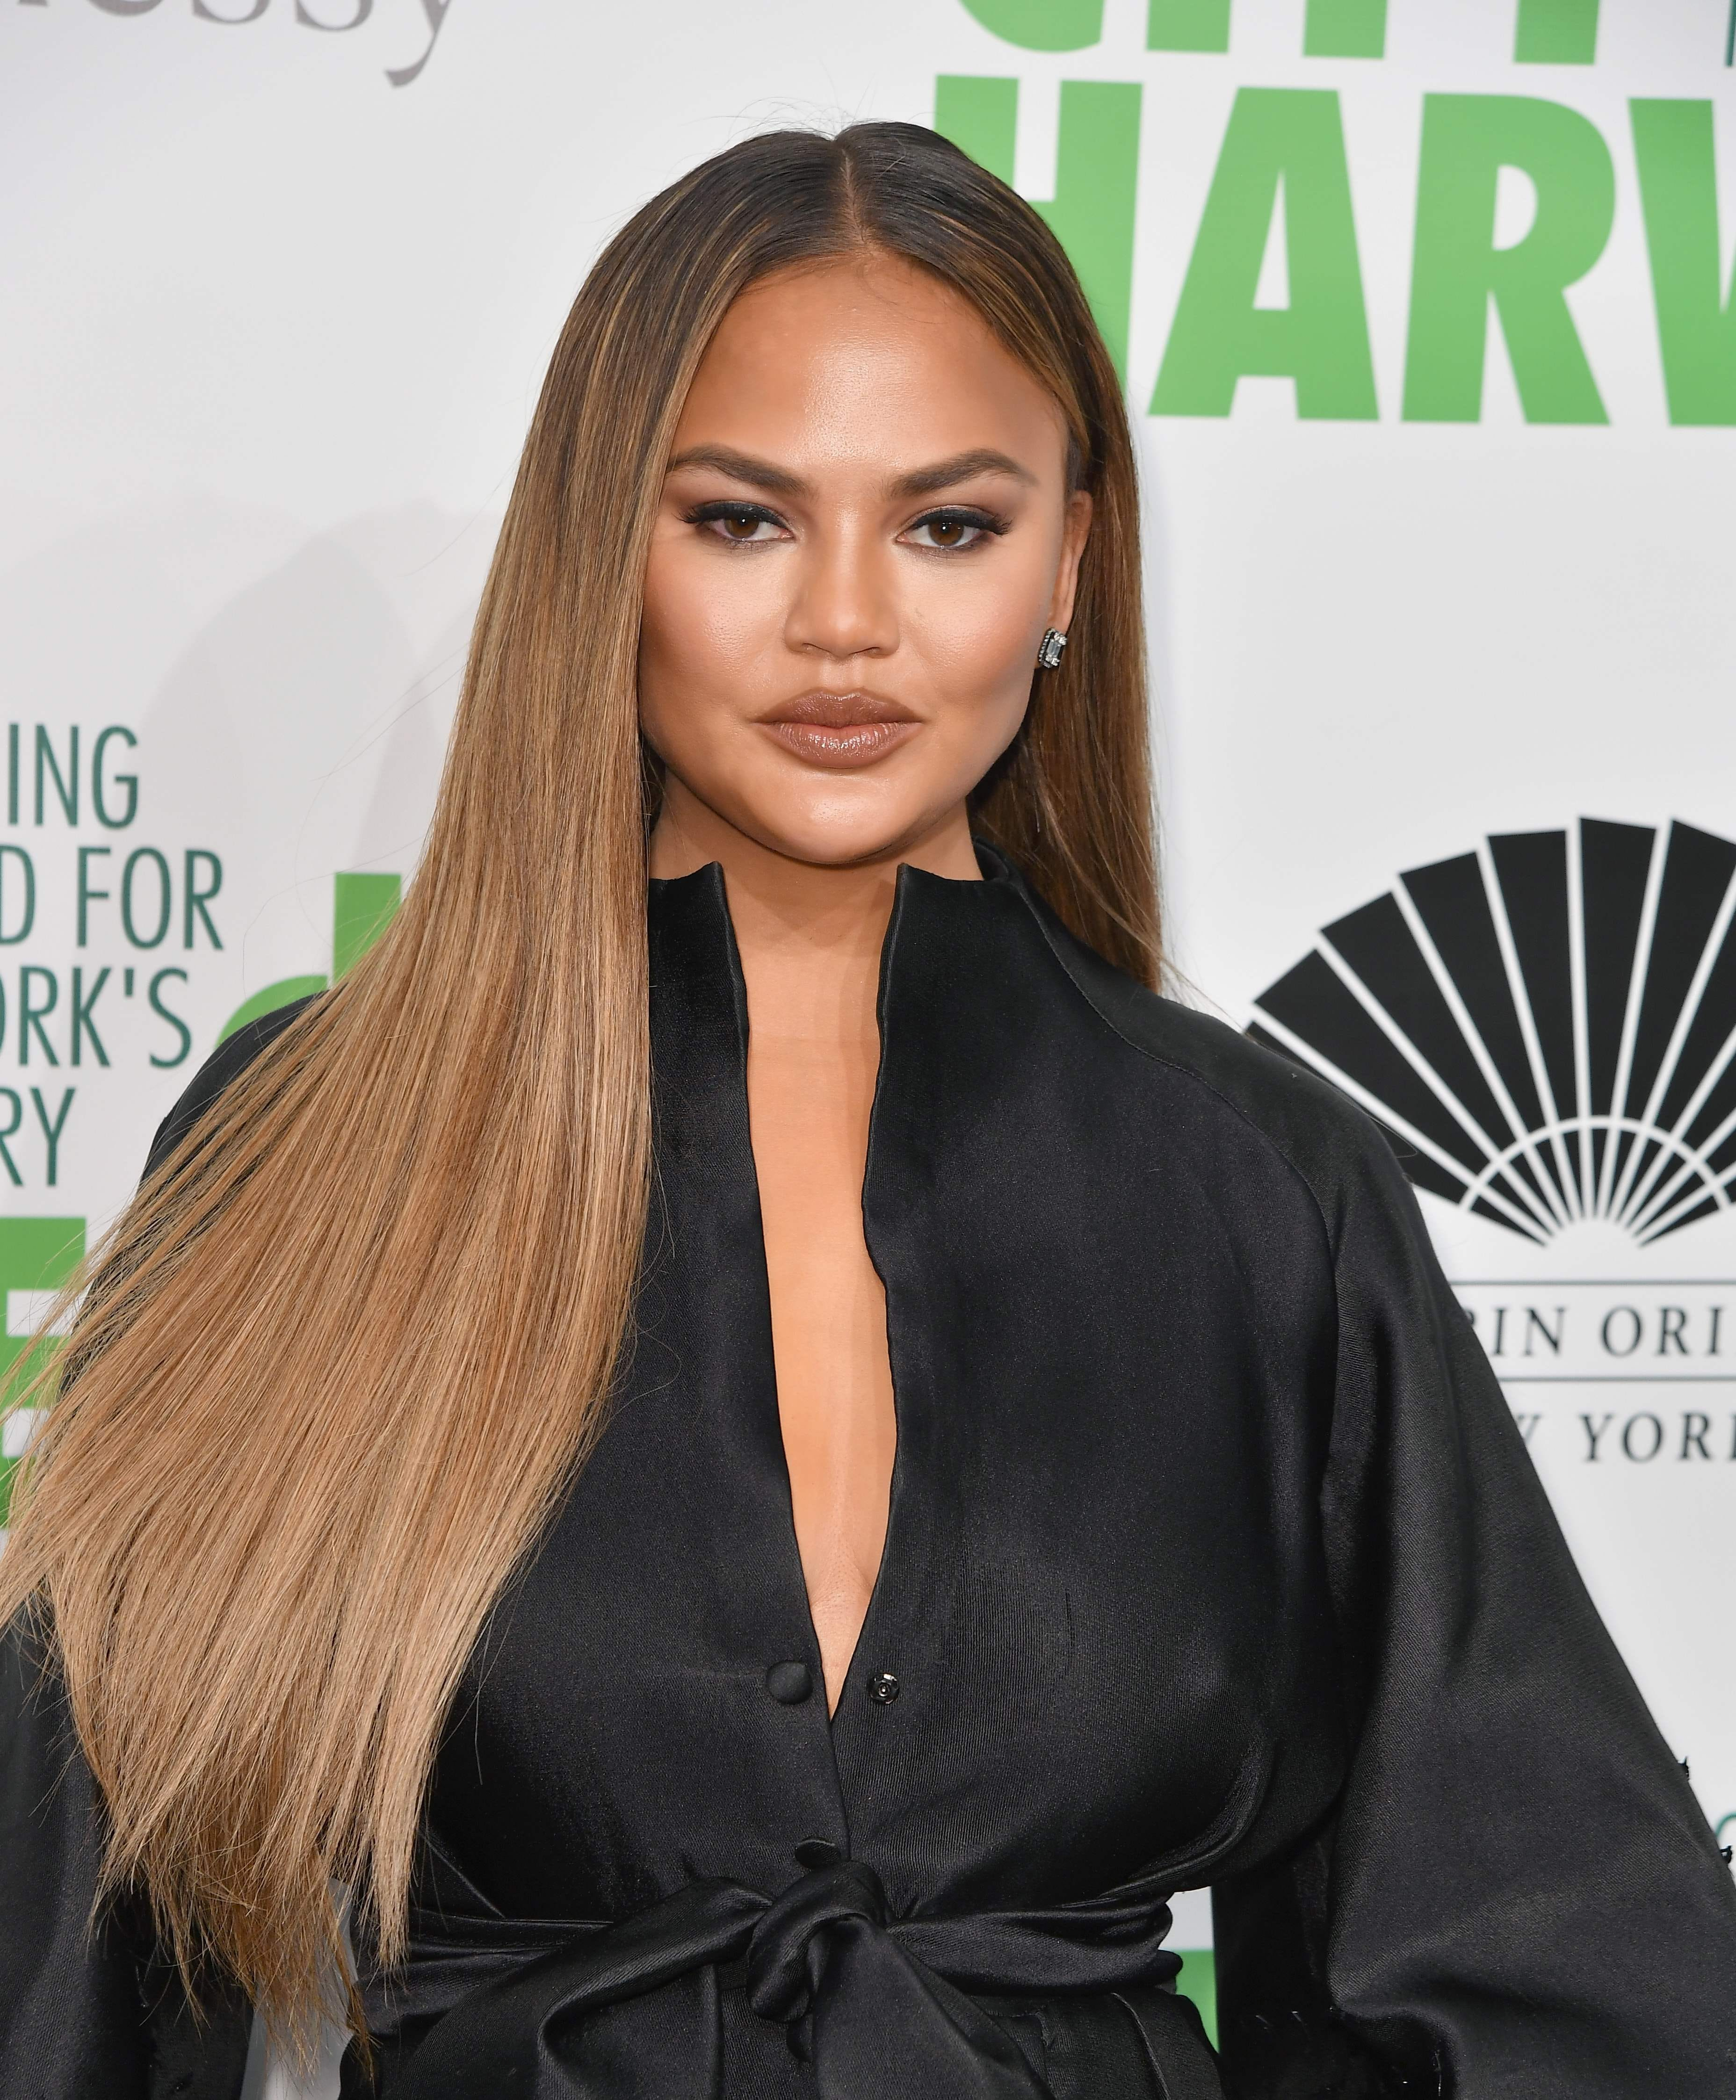 Chrissy Teigen abruptly quits Twitter. 6 signs you need to unplug and ditch social media